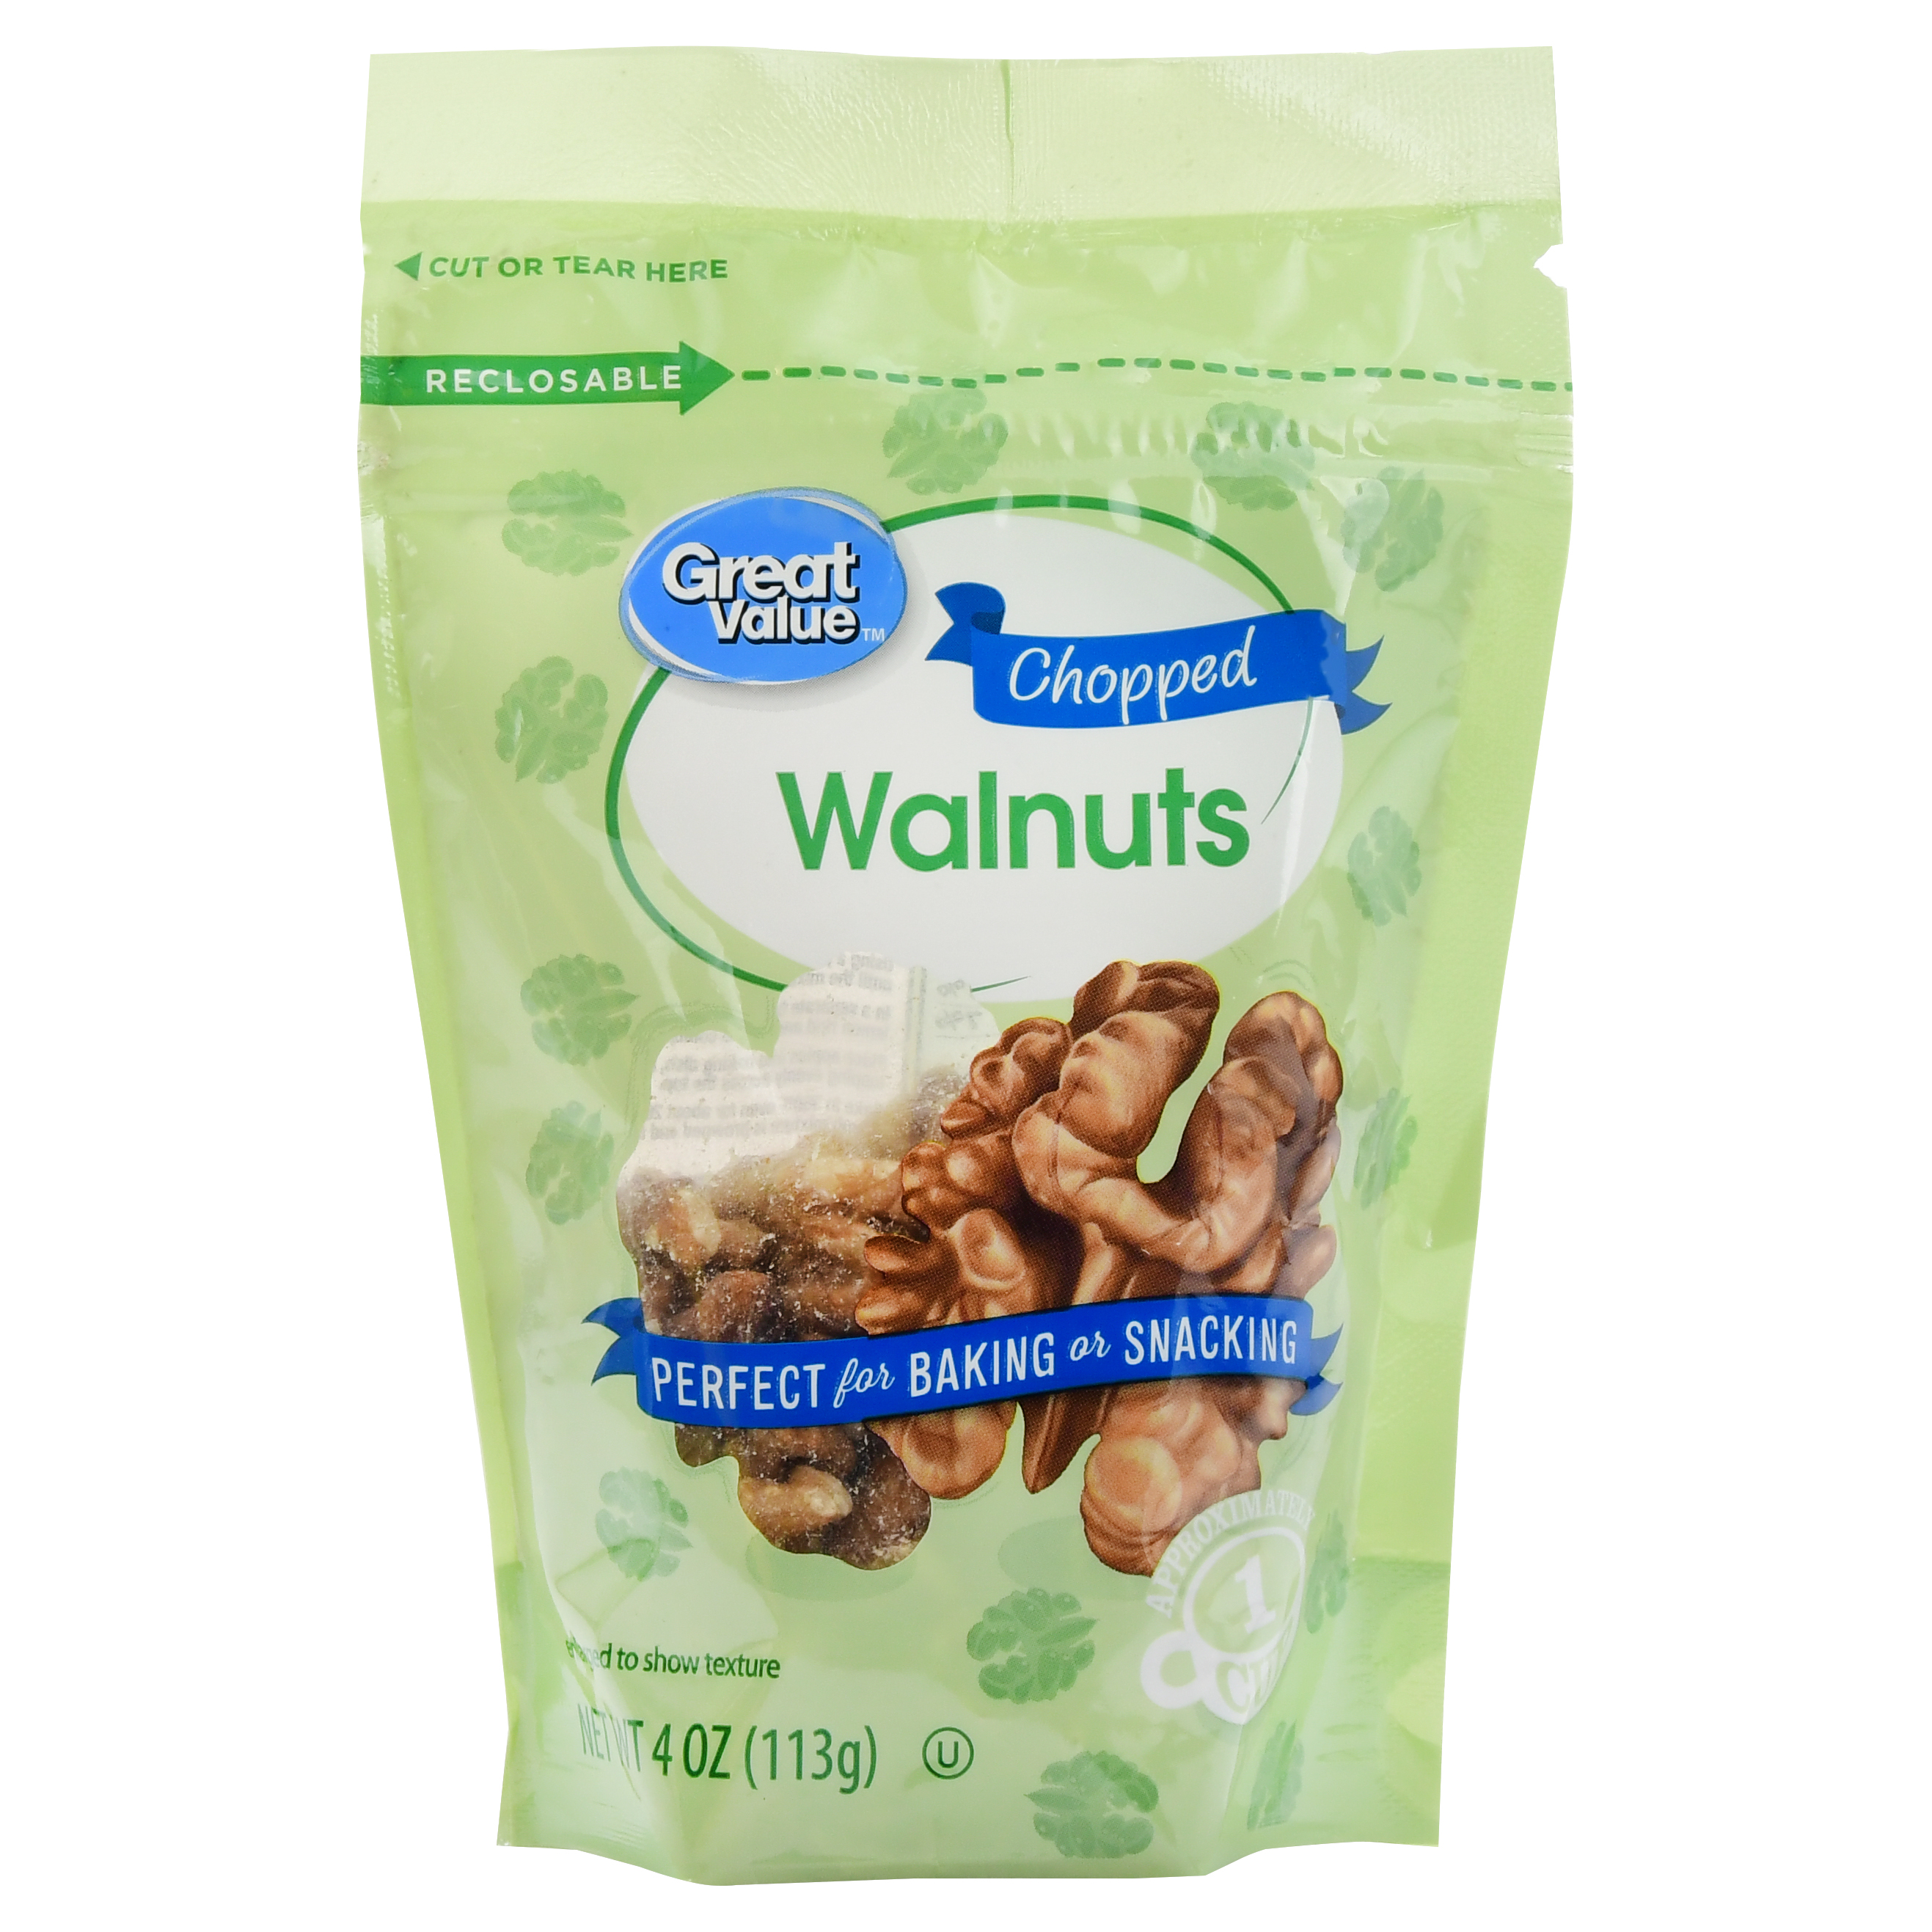 Great Value Chopped Walnuts, 4 oz